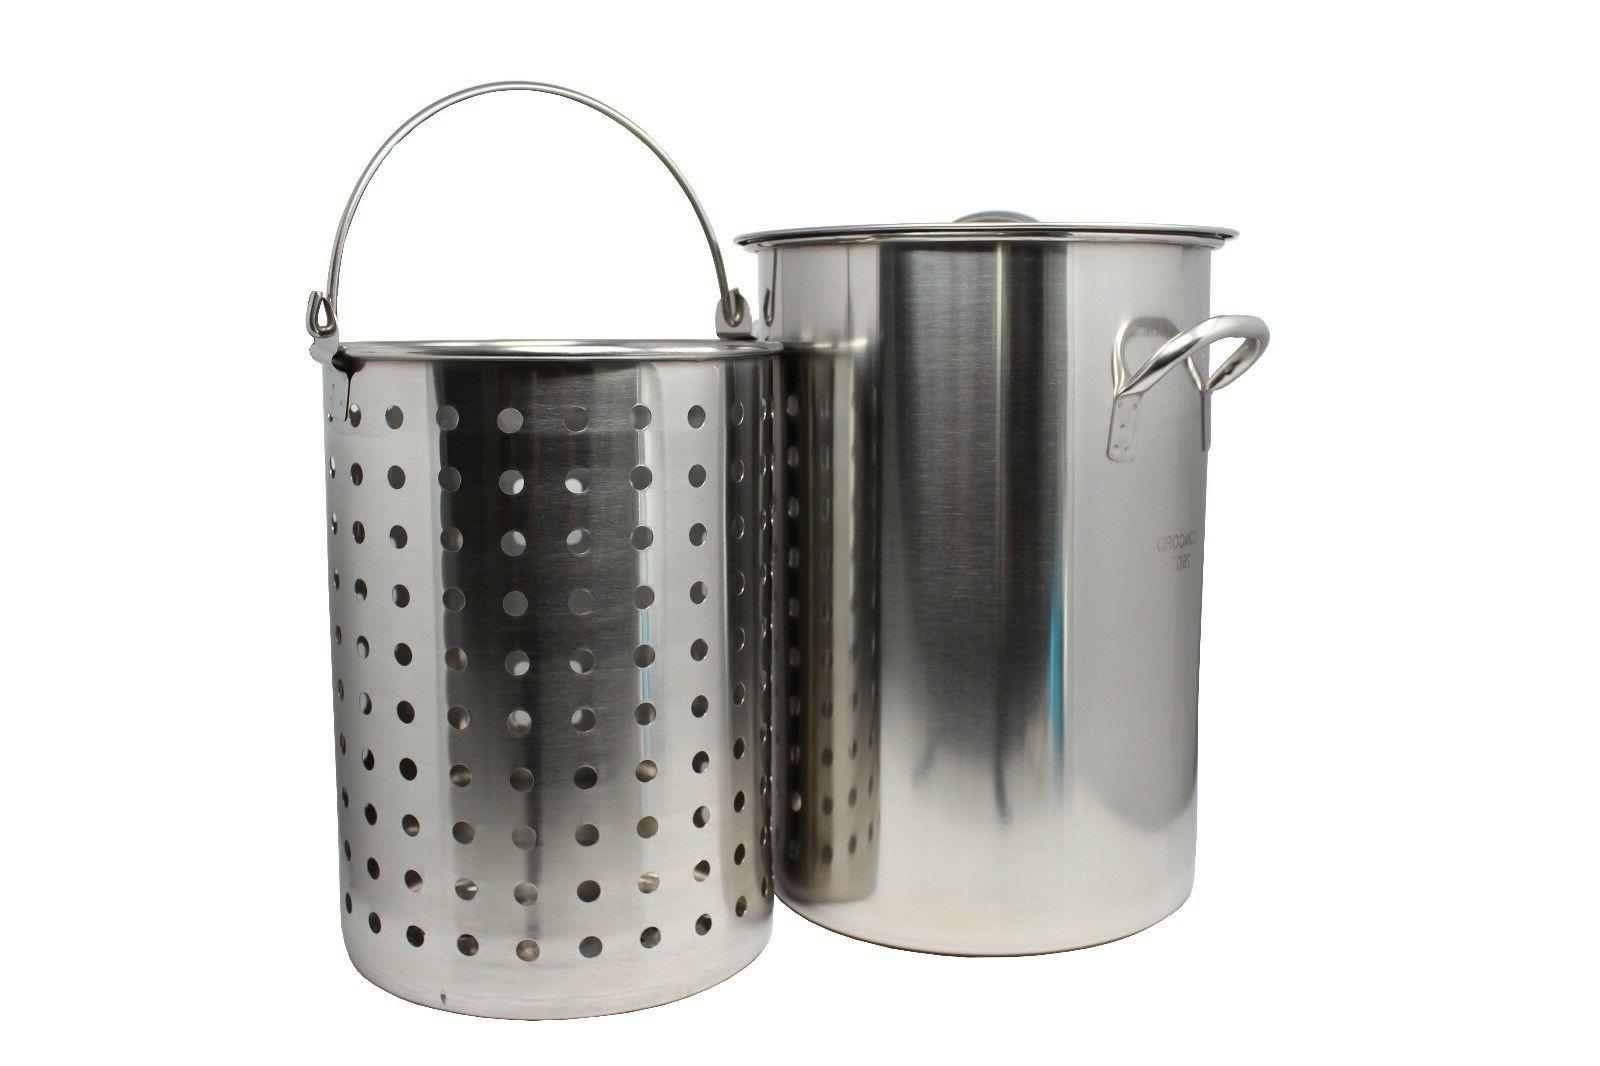 stainless steel stock pot w basket heavy